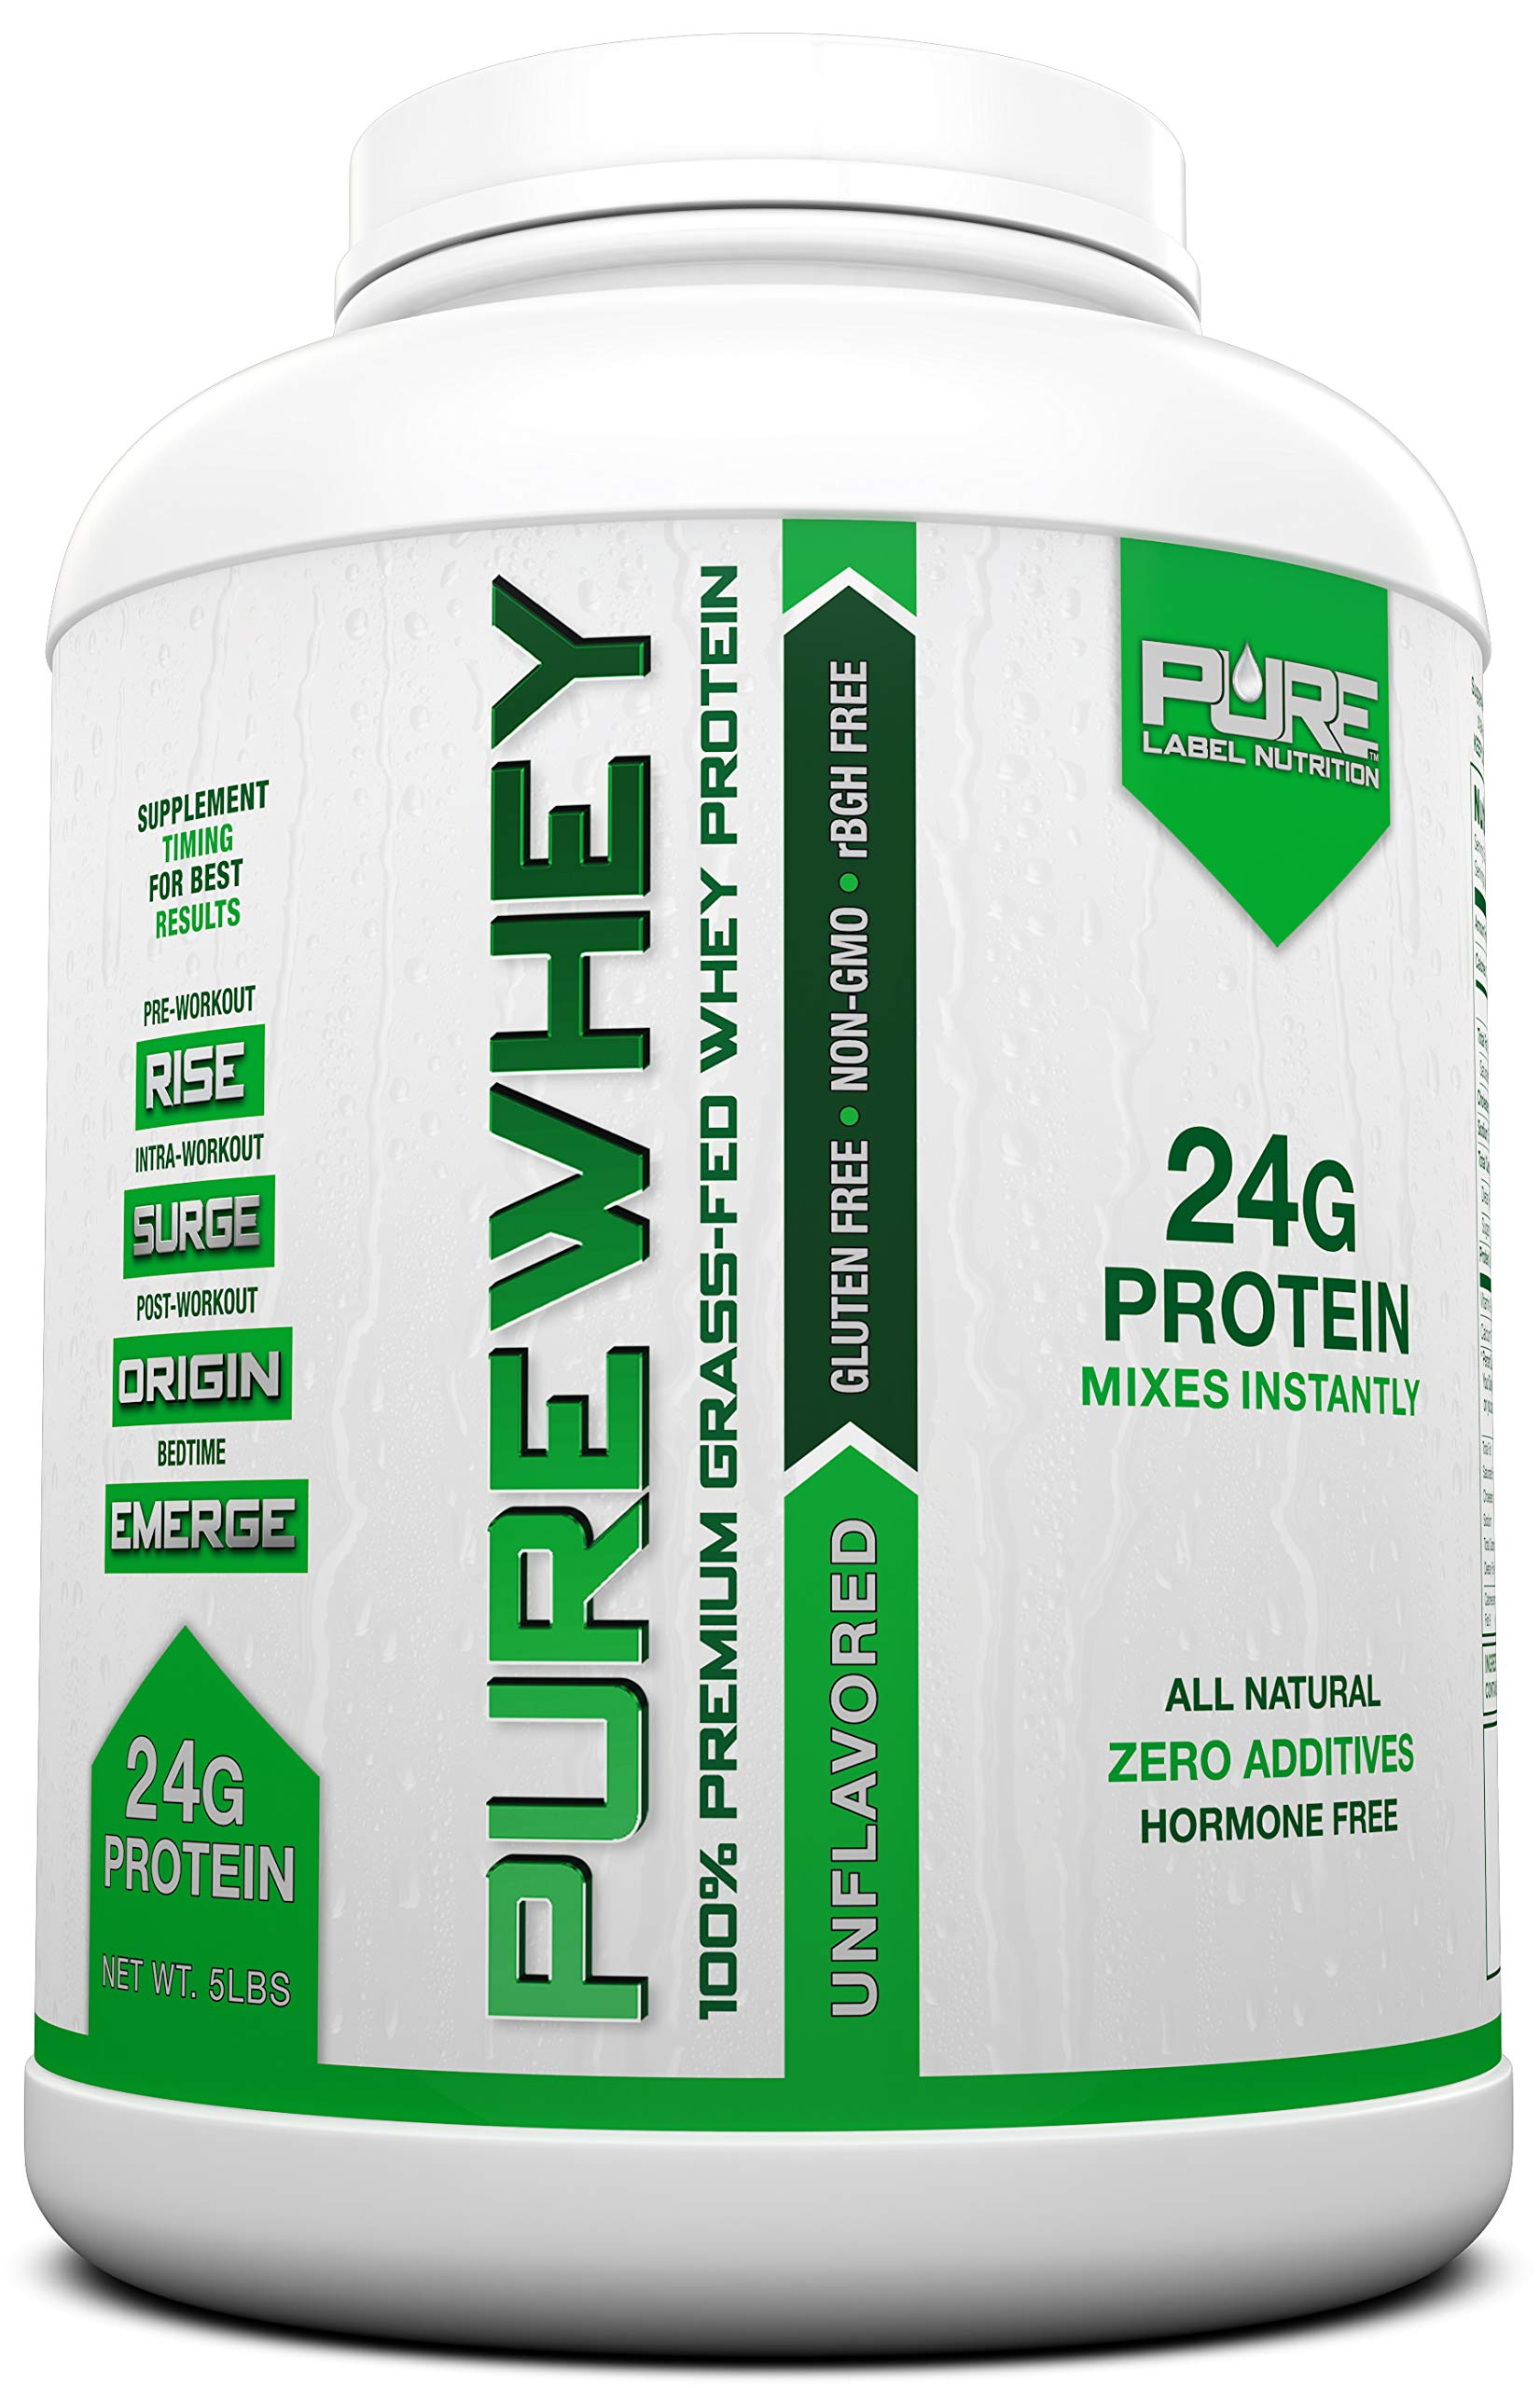 Grass Fed Whey Protein - 5lb Unflavored - 100% Natural, Cold Processed Undenatured Whey w/No Sweeteners or Added Sugars - rBGH Free + GMO-Free + Gluten Free + Preservative Free - Pure Whey by Pure Label Nutrition